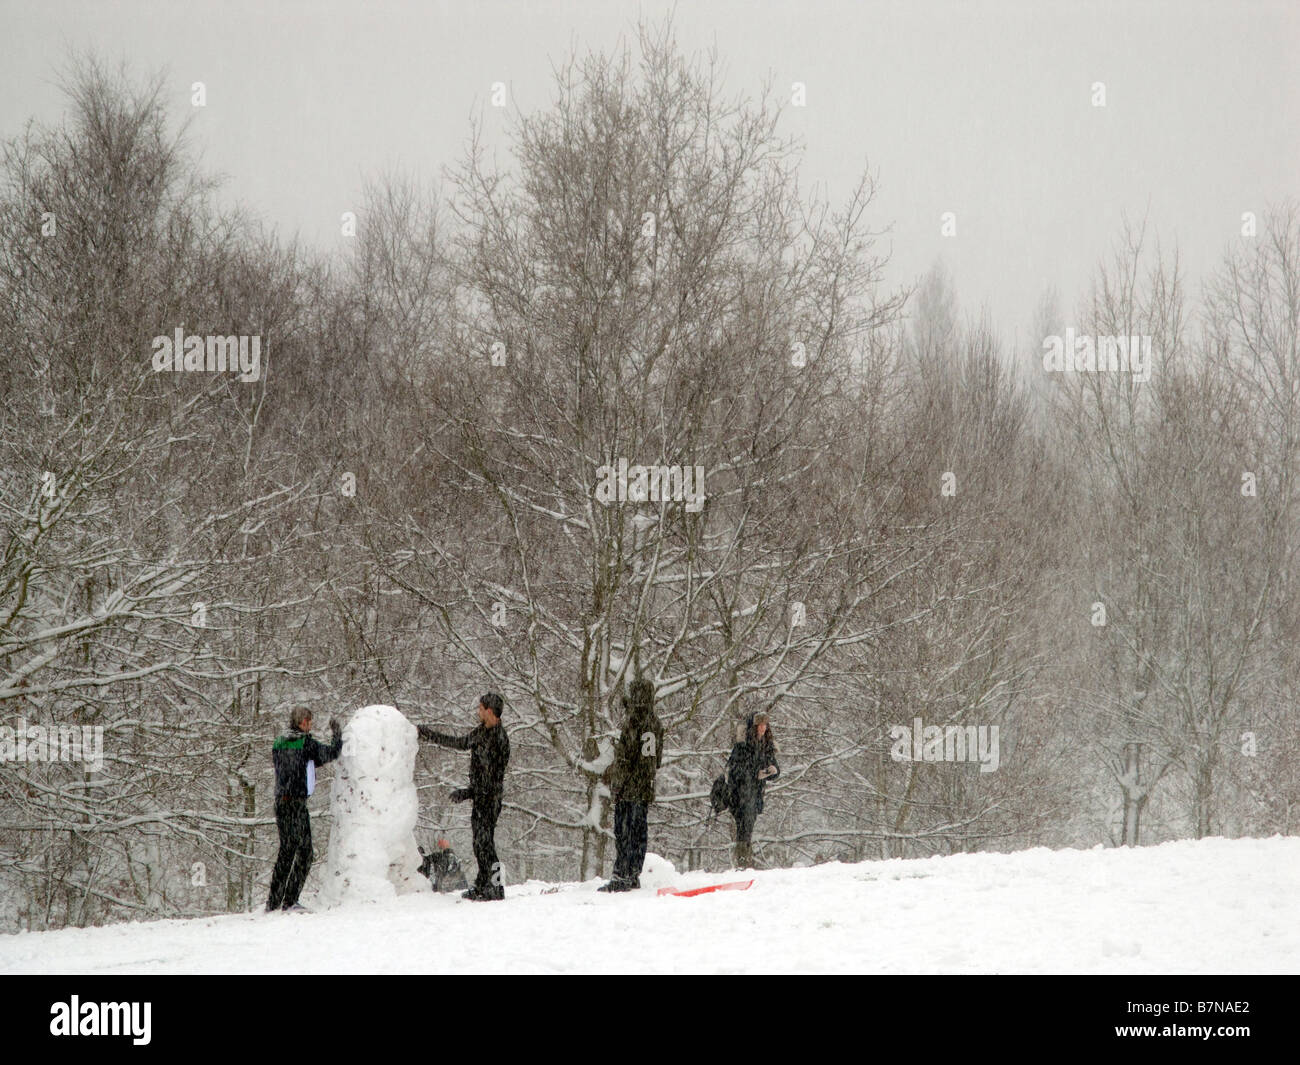 Youths building a snowman. - Stock Image